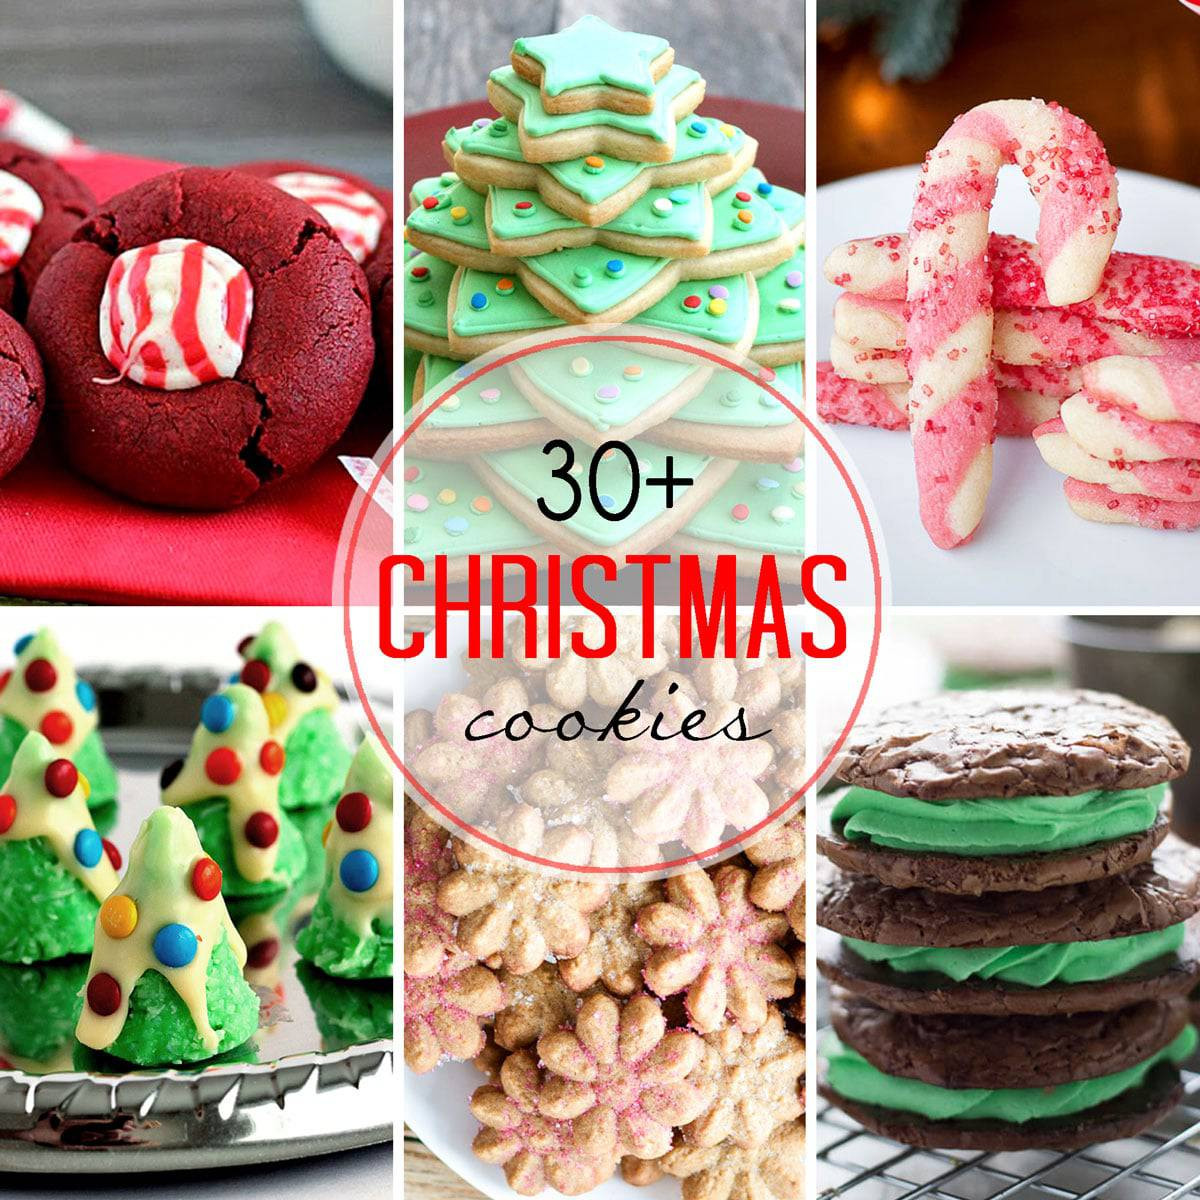 Christmas Baking Receipies  30 Plus Festive Christmas Cookie Recipes — Let s Dish Recipes